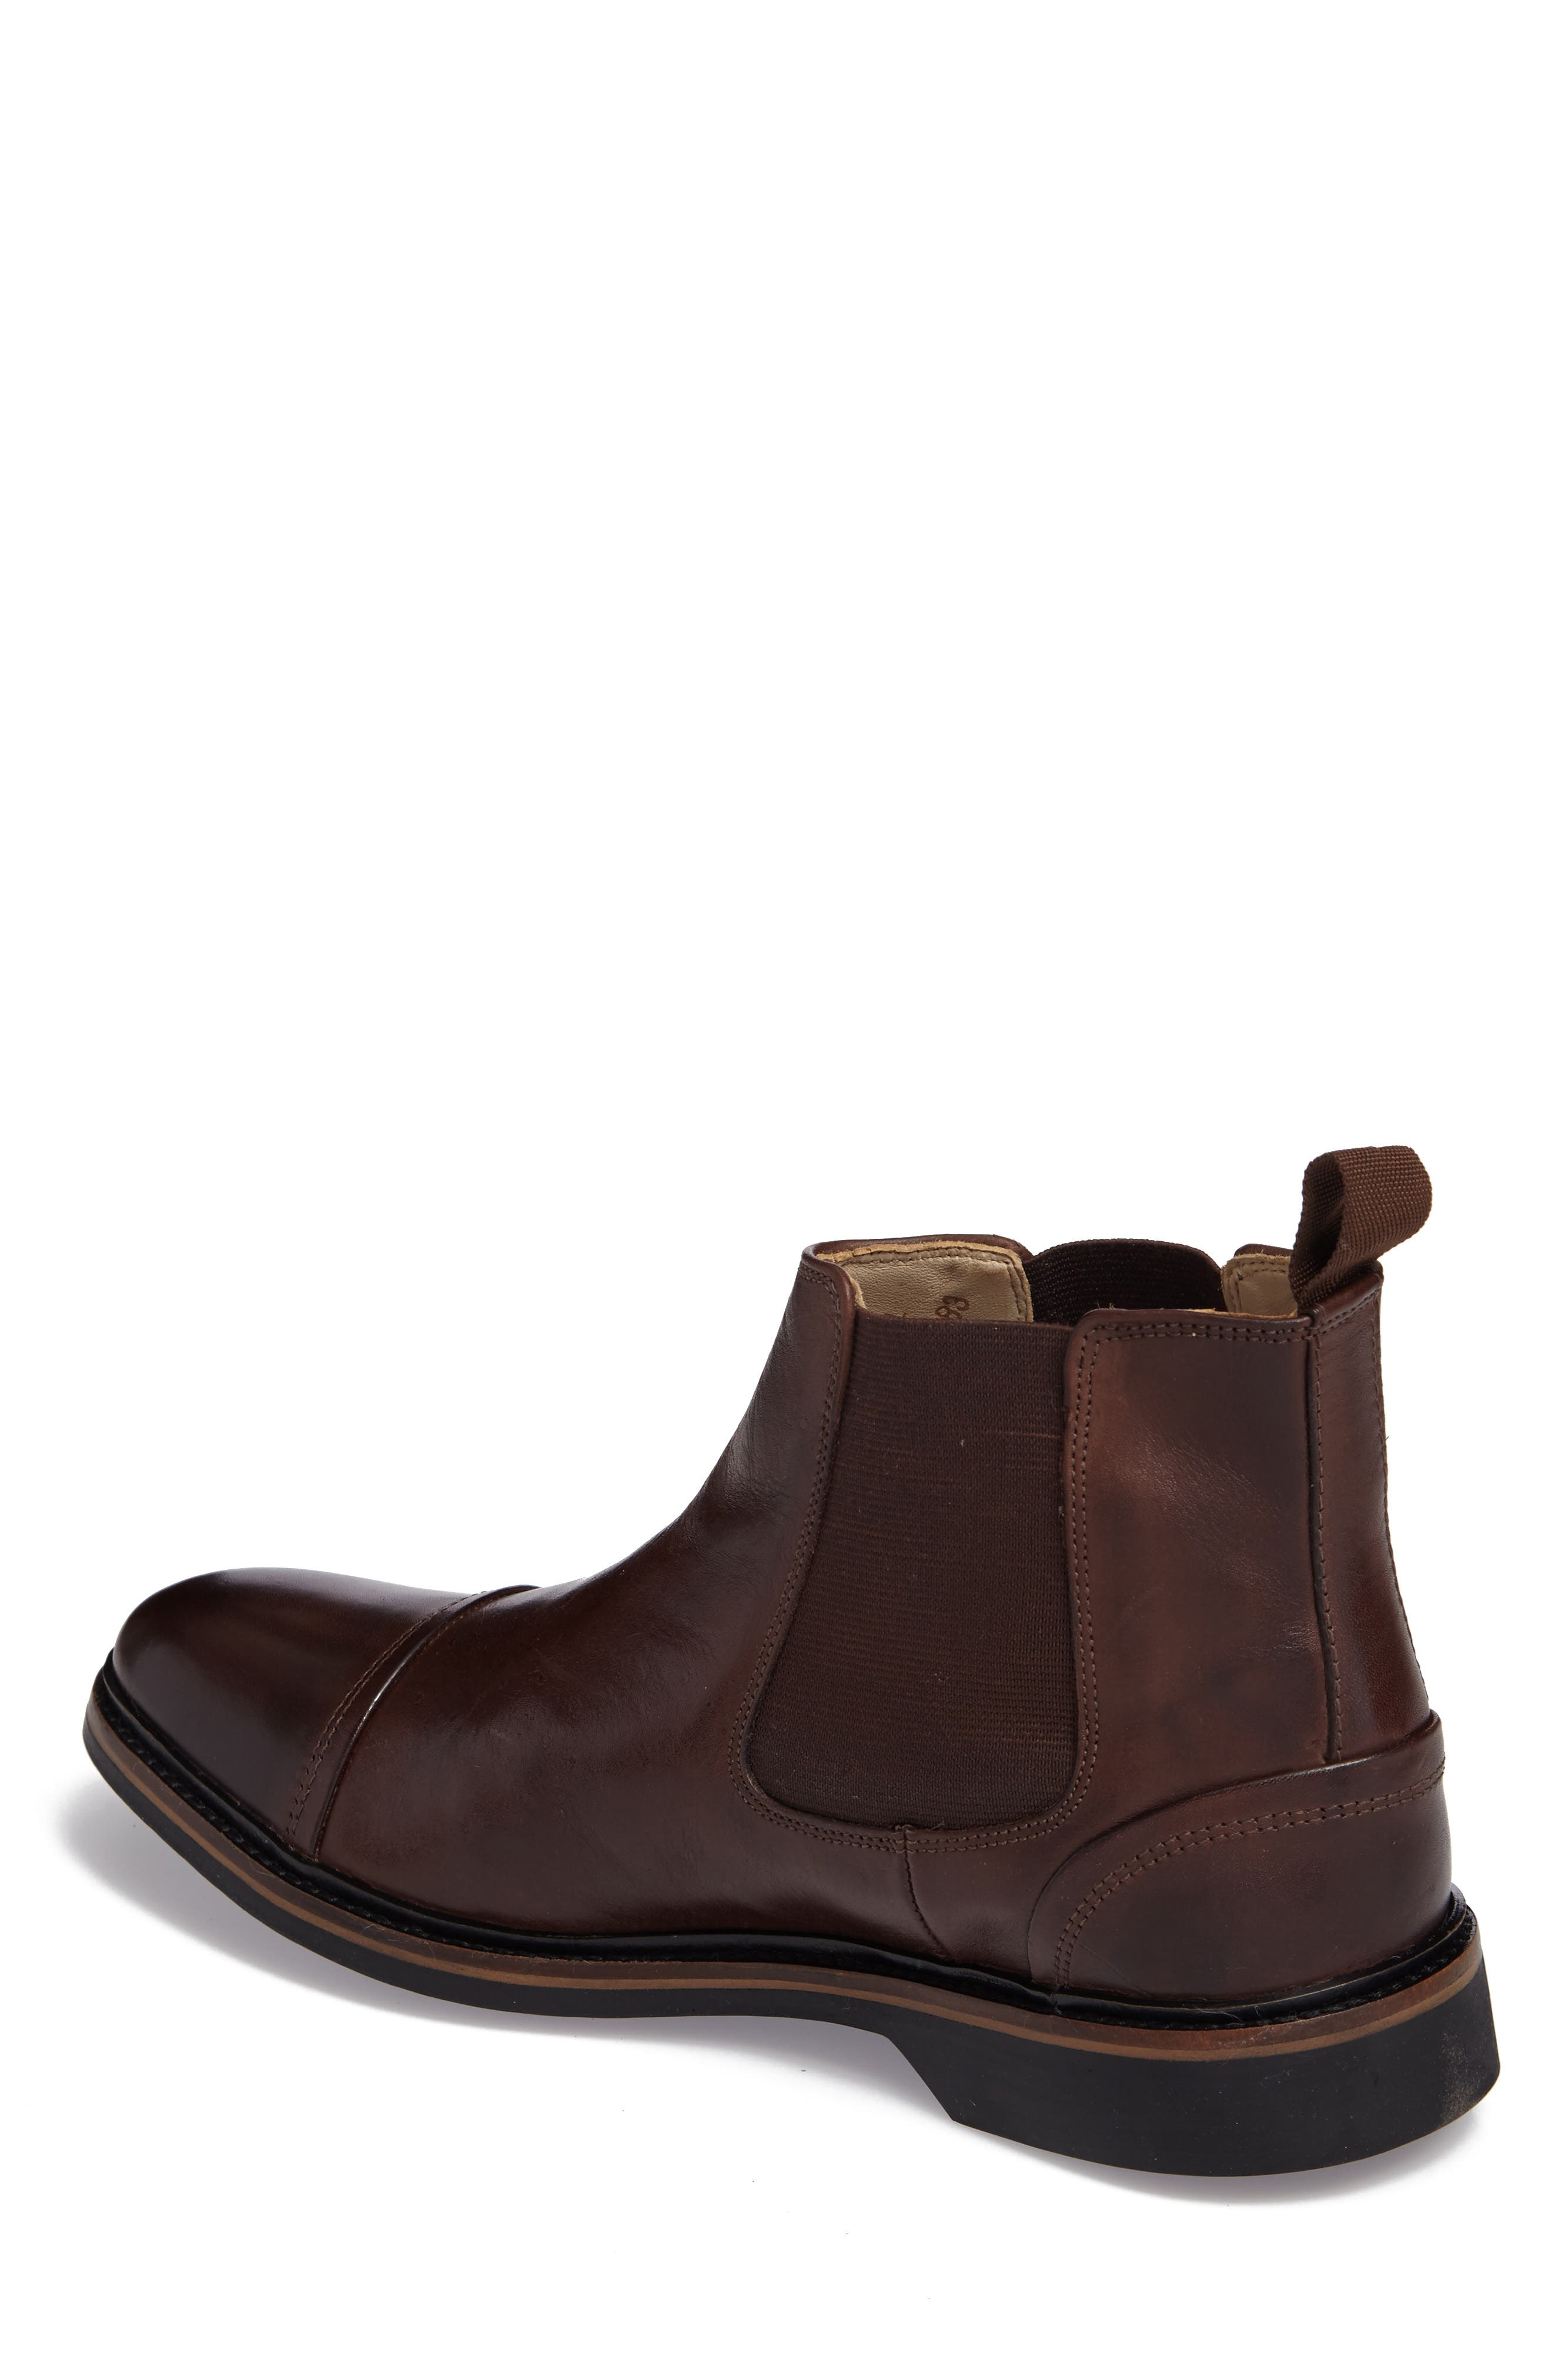 Floriano Chelsea Boot,                             Alternate thumbnail 2, color,                             Touch Castanho